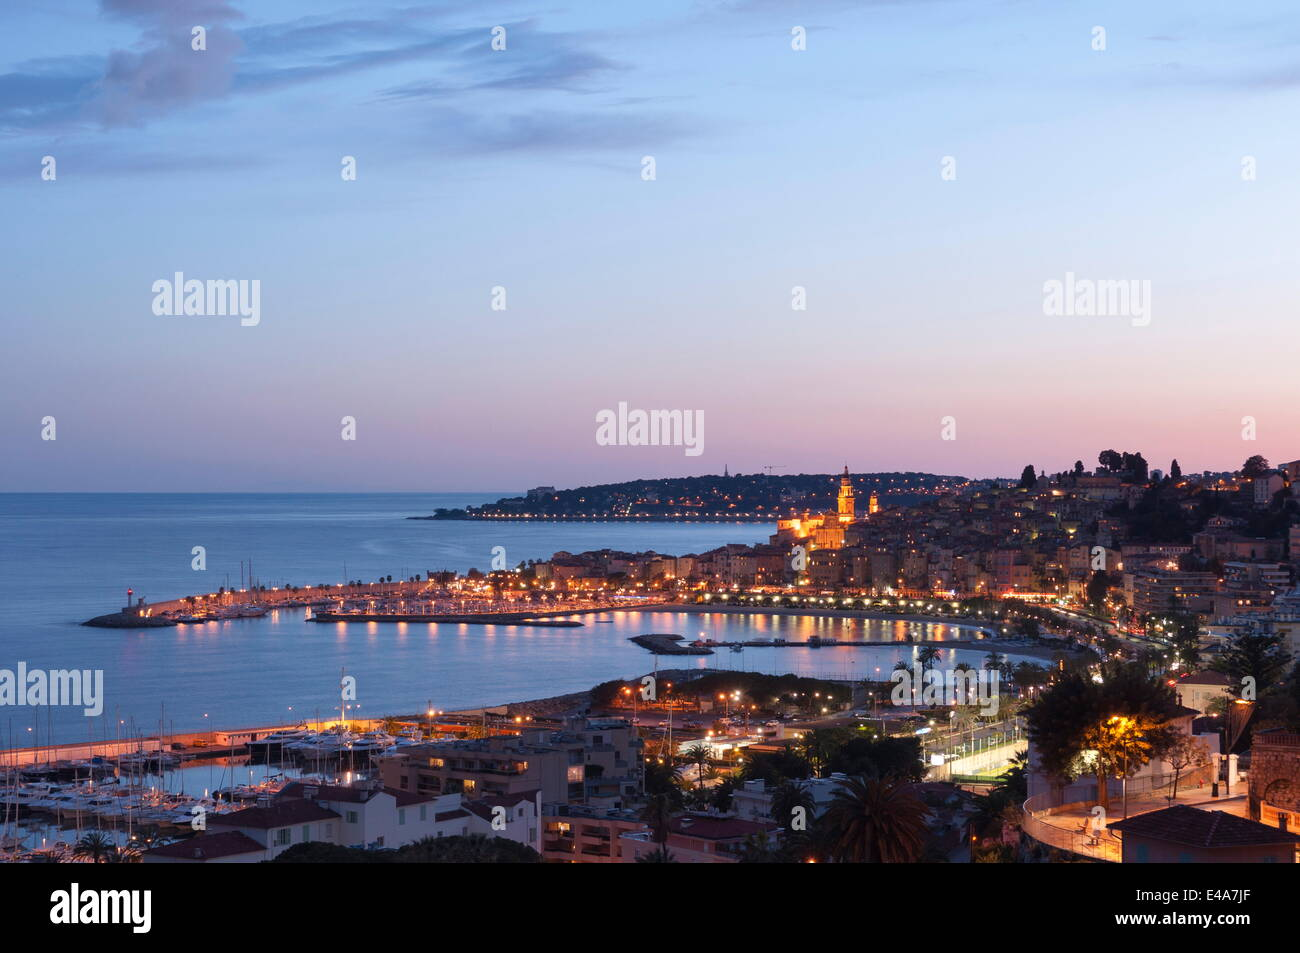 A cityscape of Menton at dusk, Provence-Alpes-Cote d'Azur, French Riviera, France, Mediterranean, Europe - Stock Image